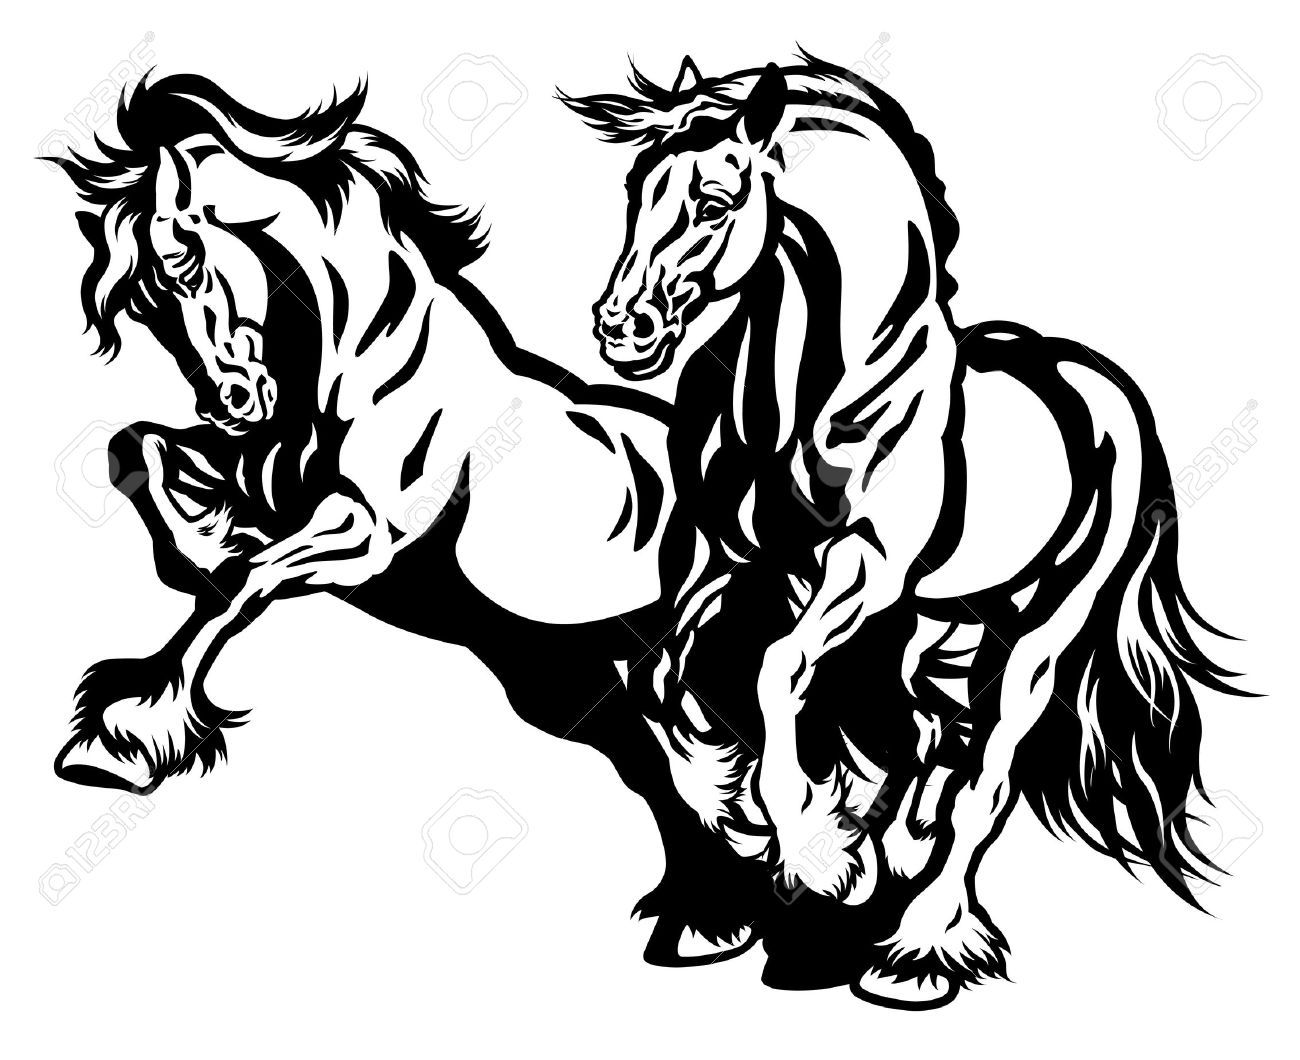 Silhouette Draft Horse Seens Google Search Black And White Illustration Horses Horse Silhouette [ 1060 x 1300 Pixel ]